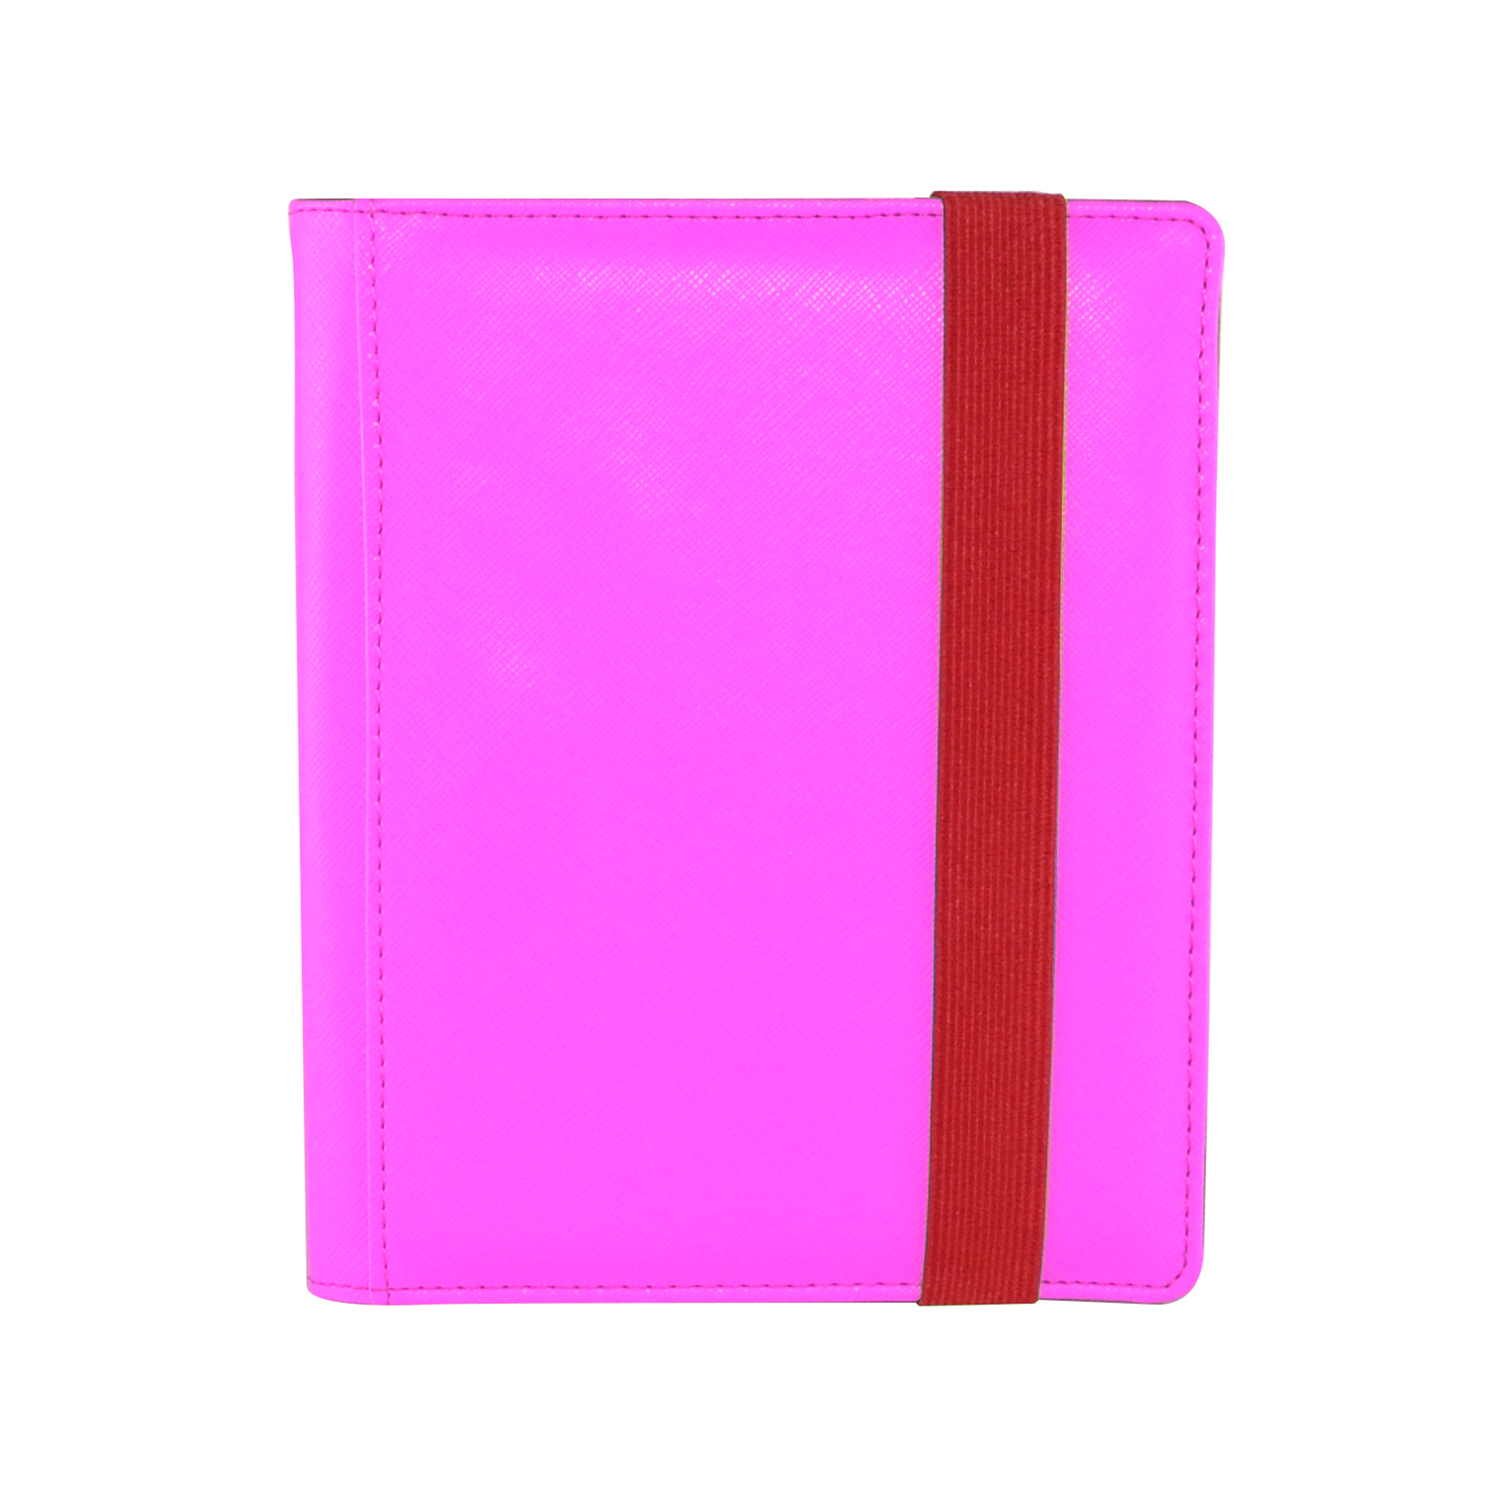 Dex Protection - The Dex Binder 4 - Pink